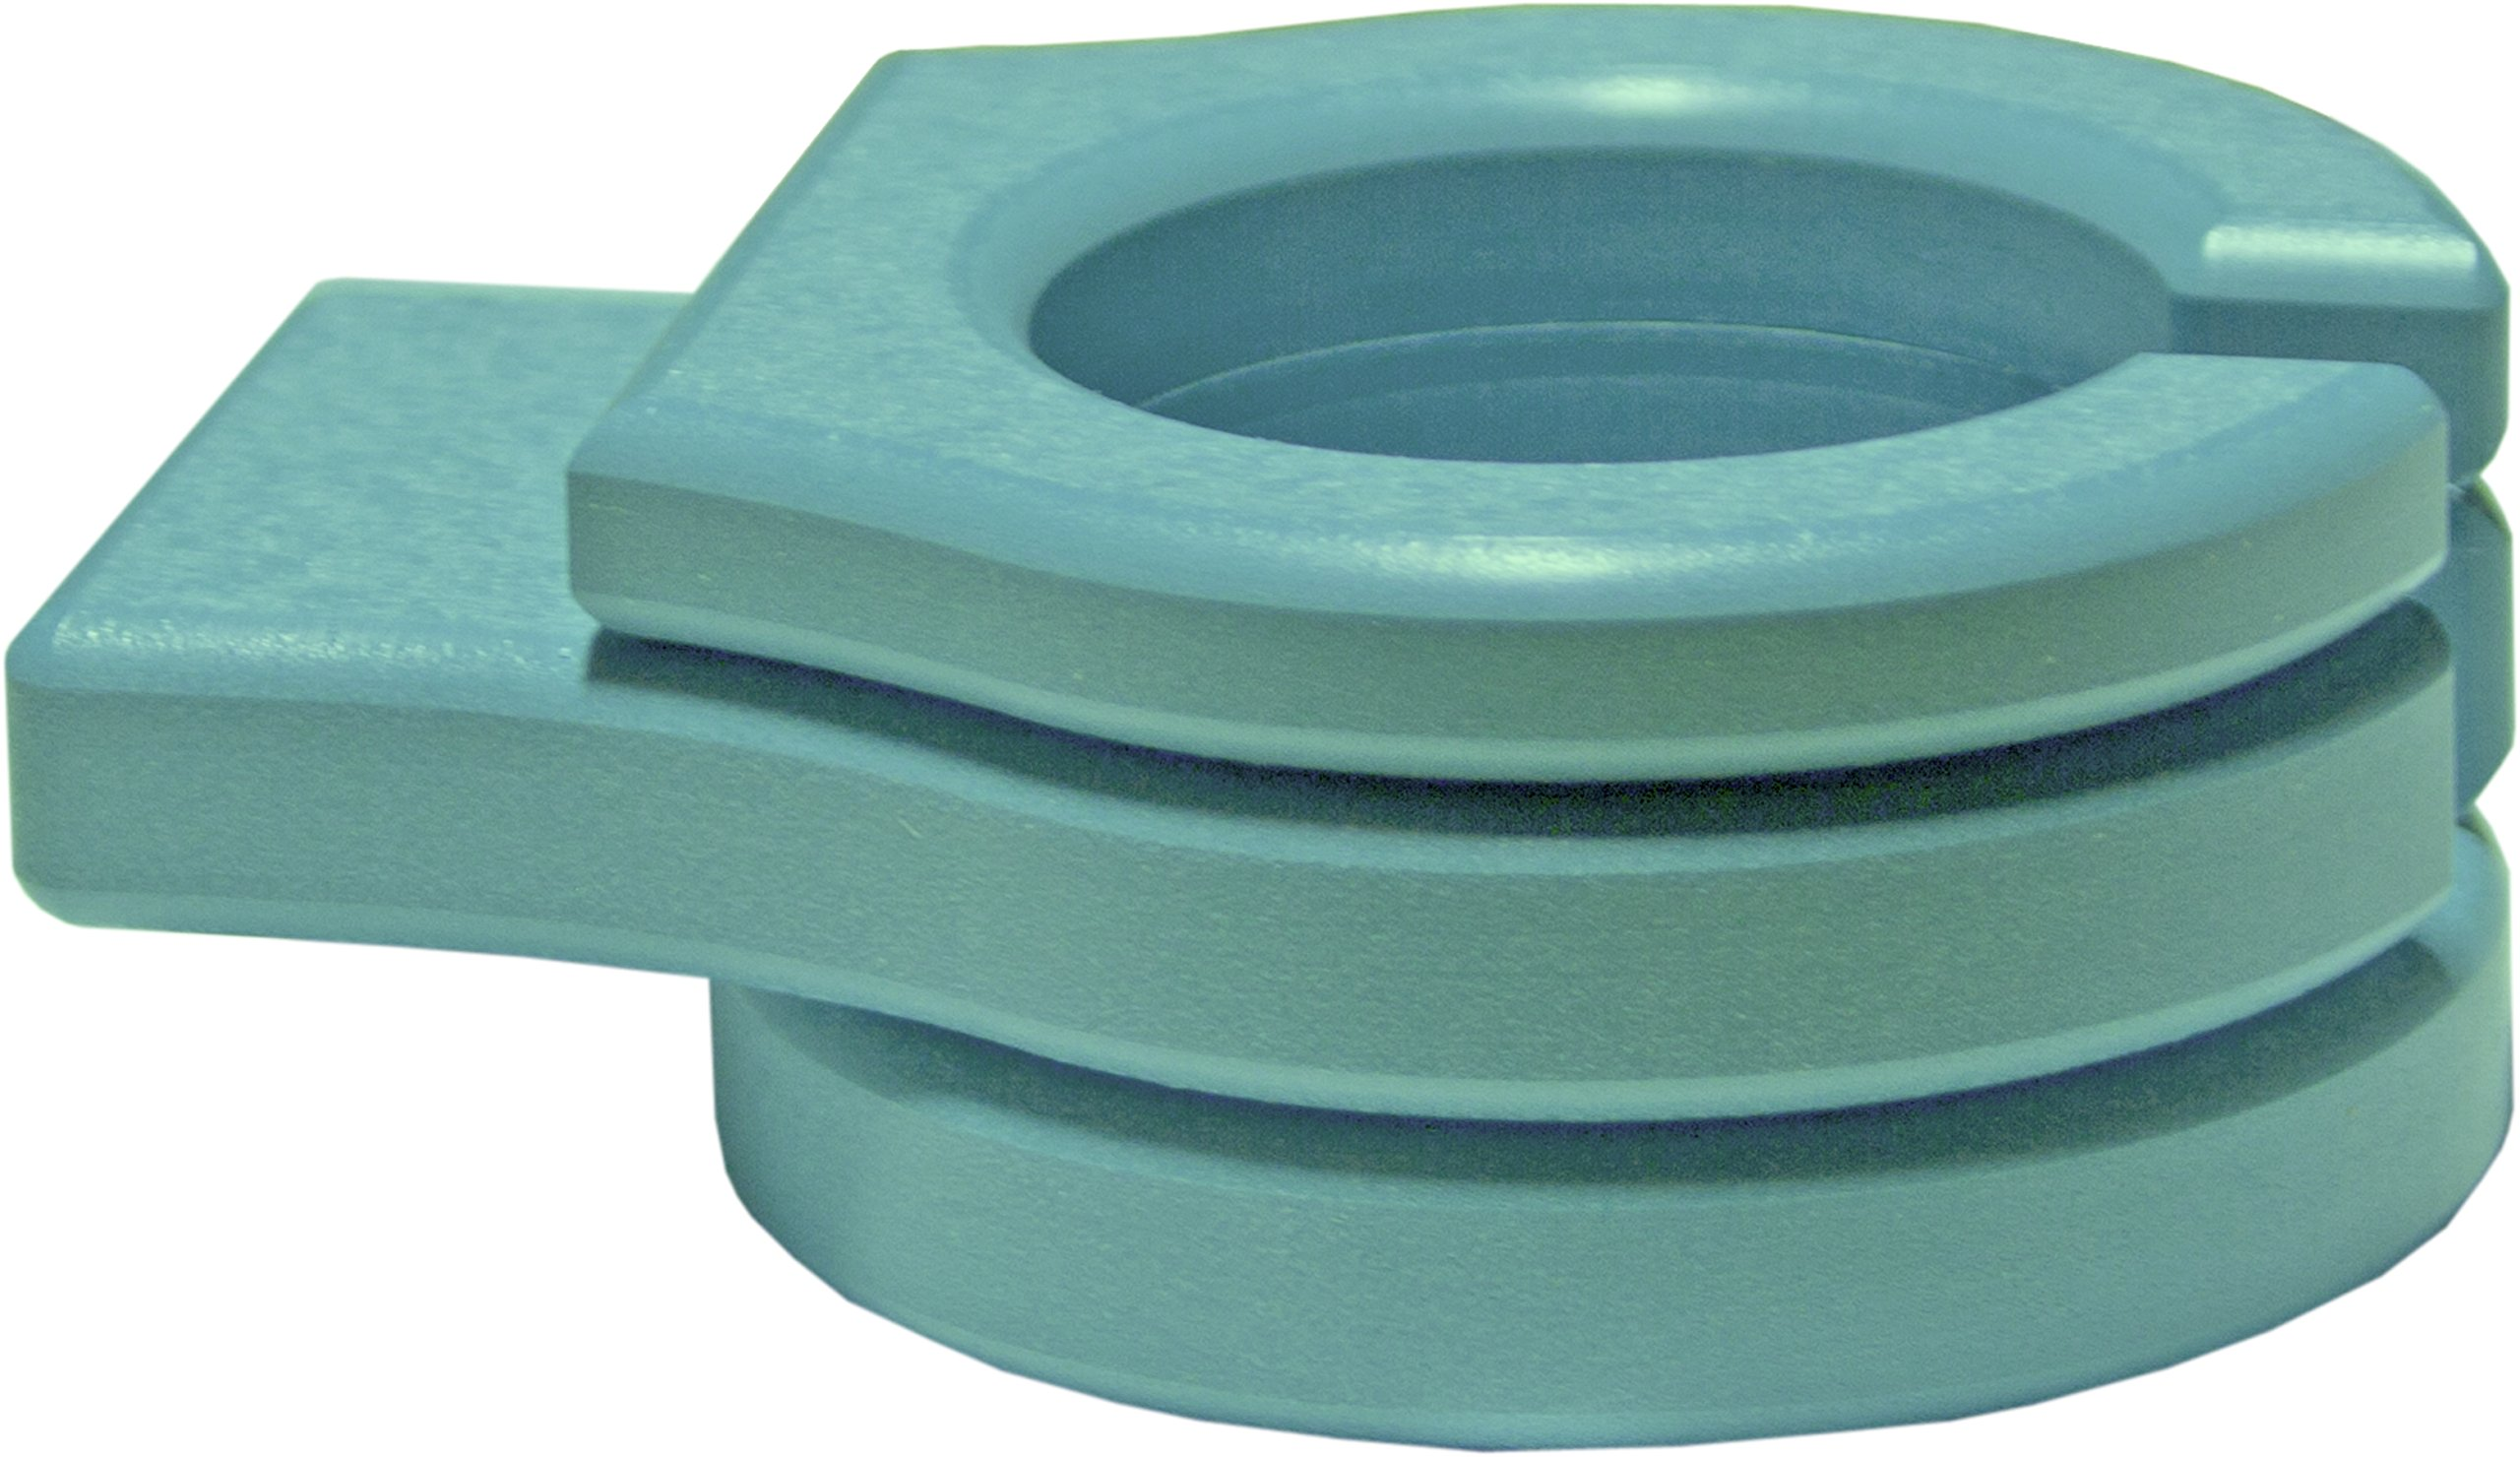 LuxCraft Poly Outdoor Stationary Cup Holder for Gliders, Benches, Deck Chairs (Tropical - Aruba Blue)